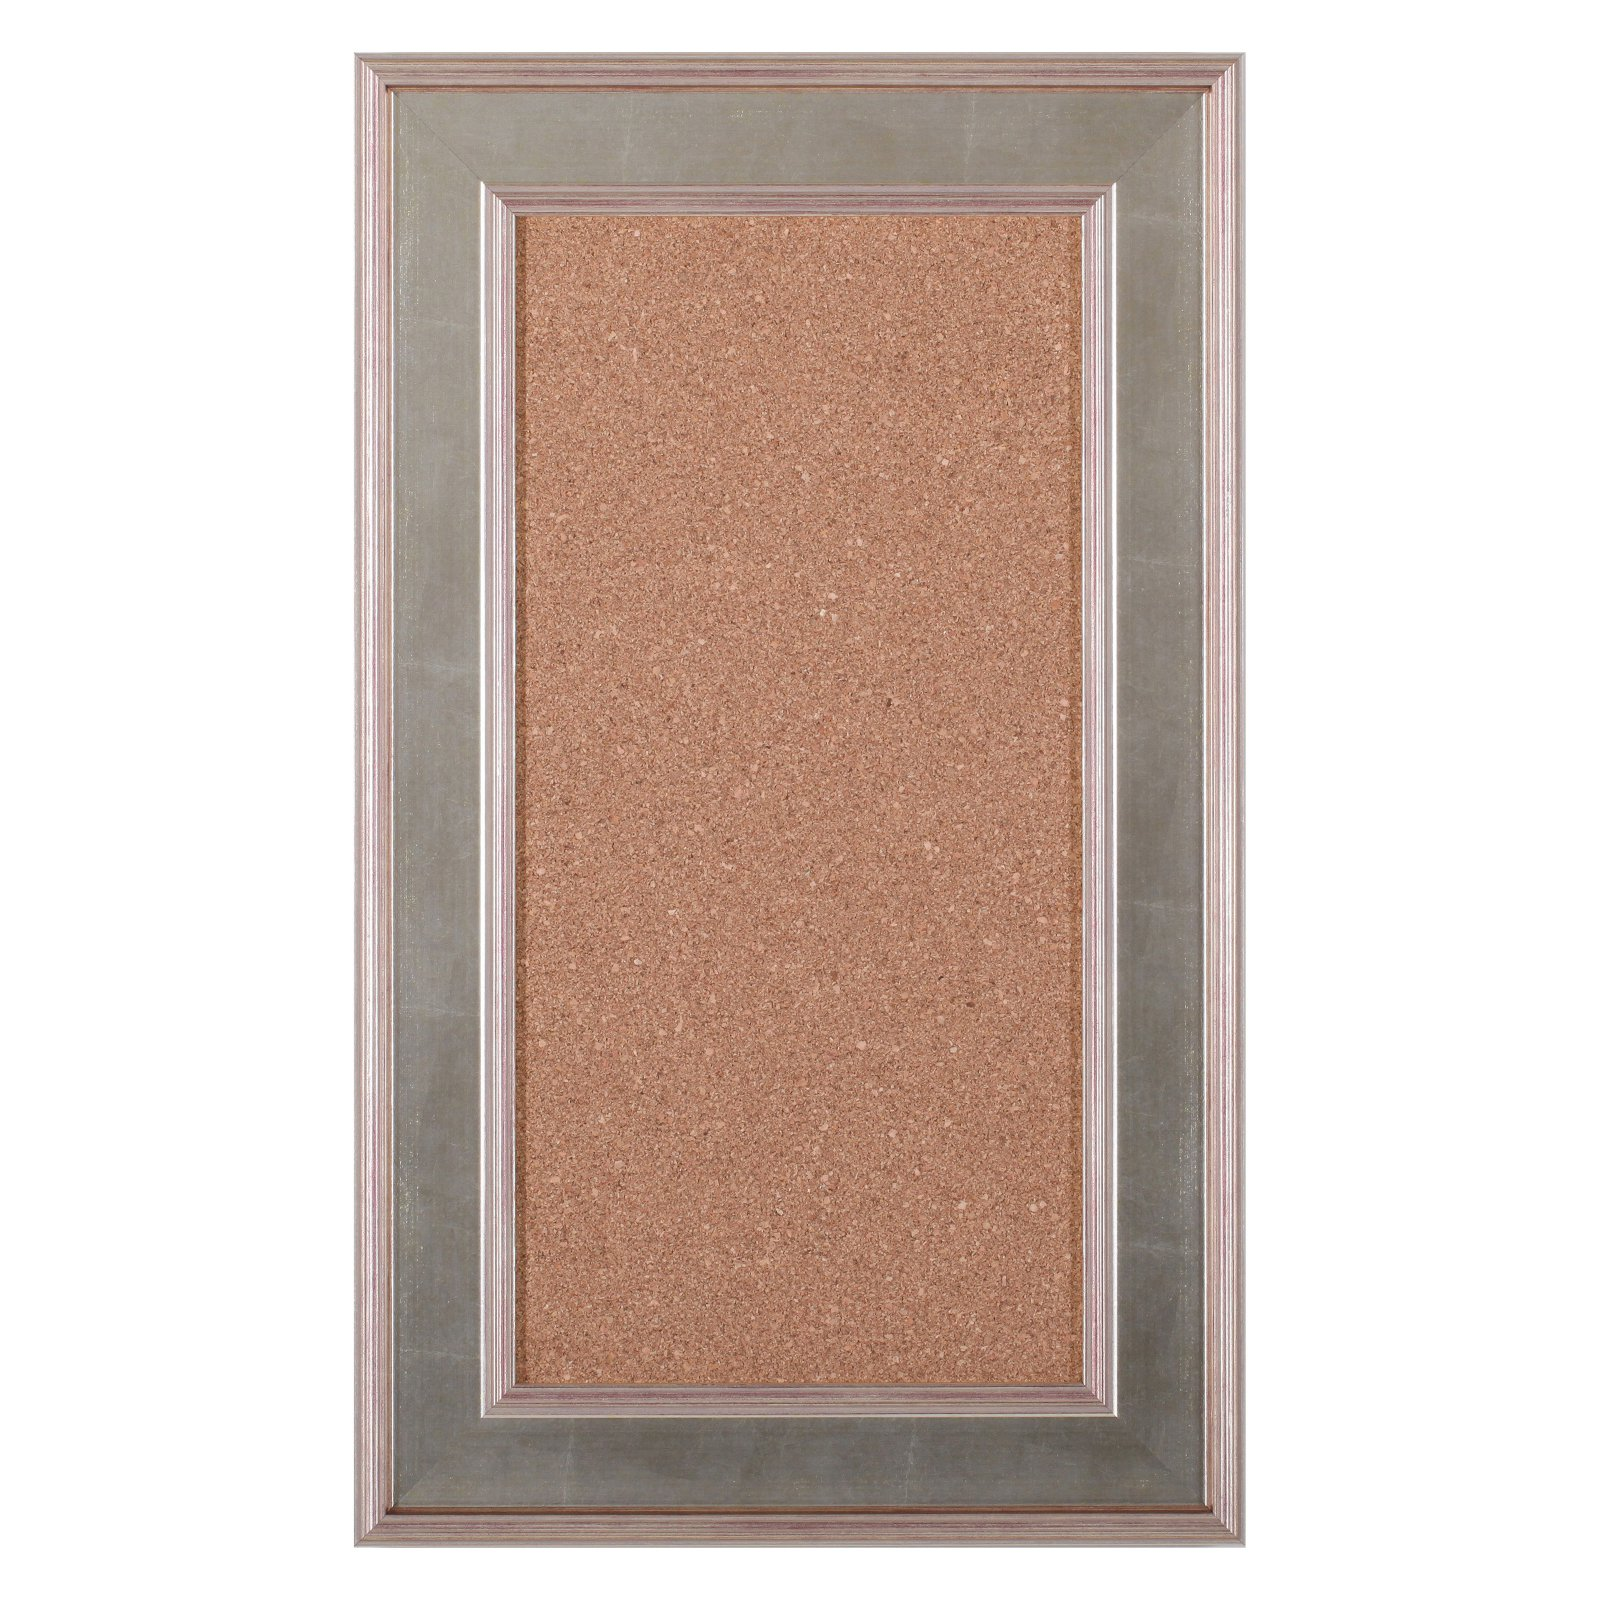 Art Effects Accent Cork Board - Brushed Silver / Champagne Gold